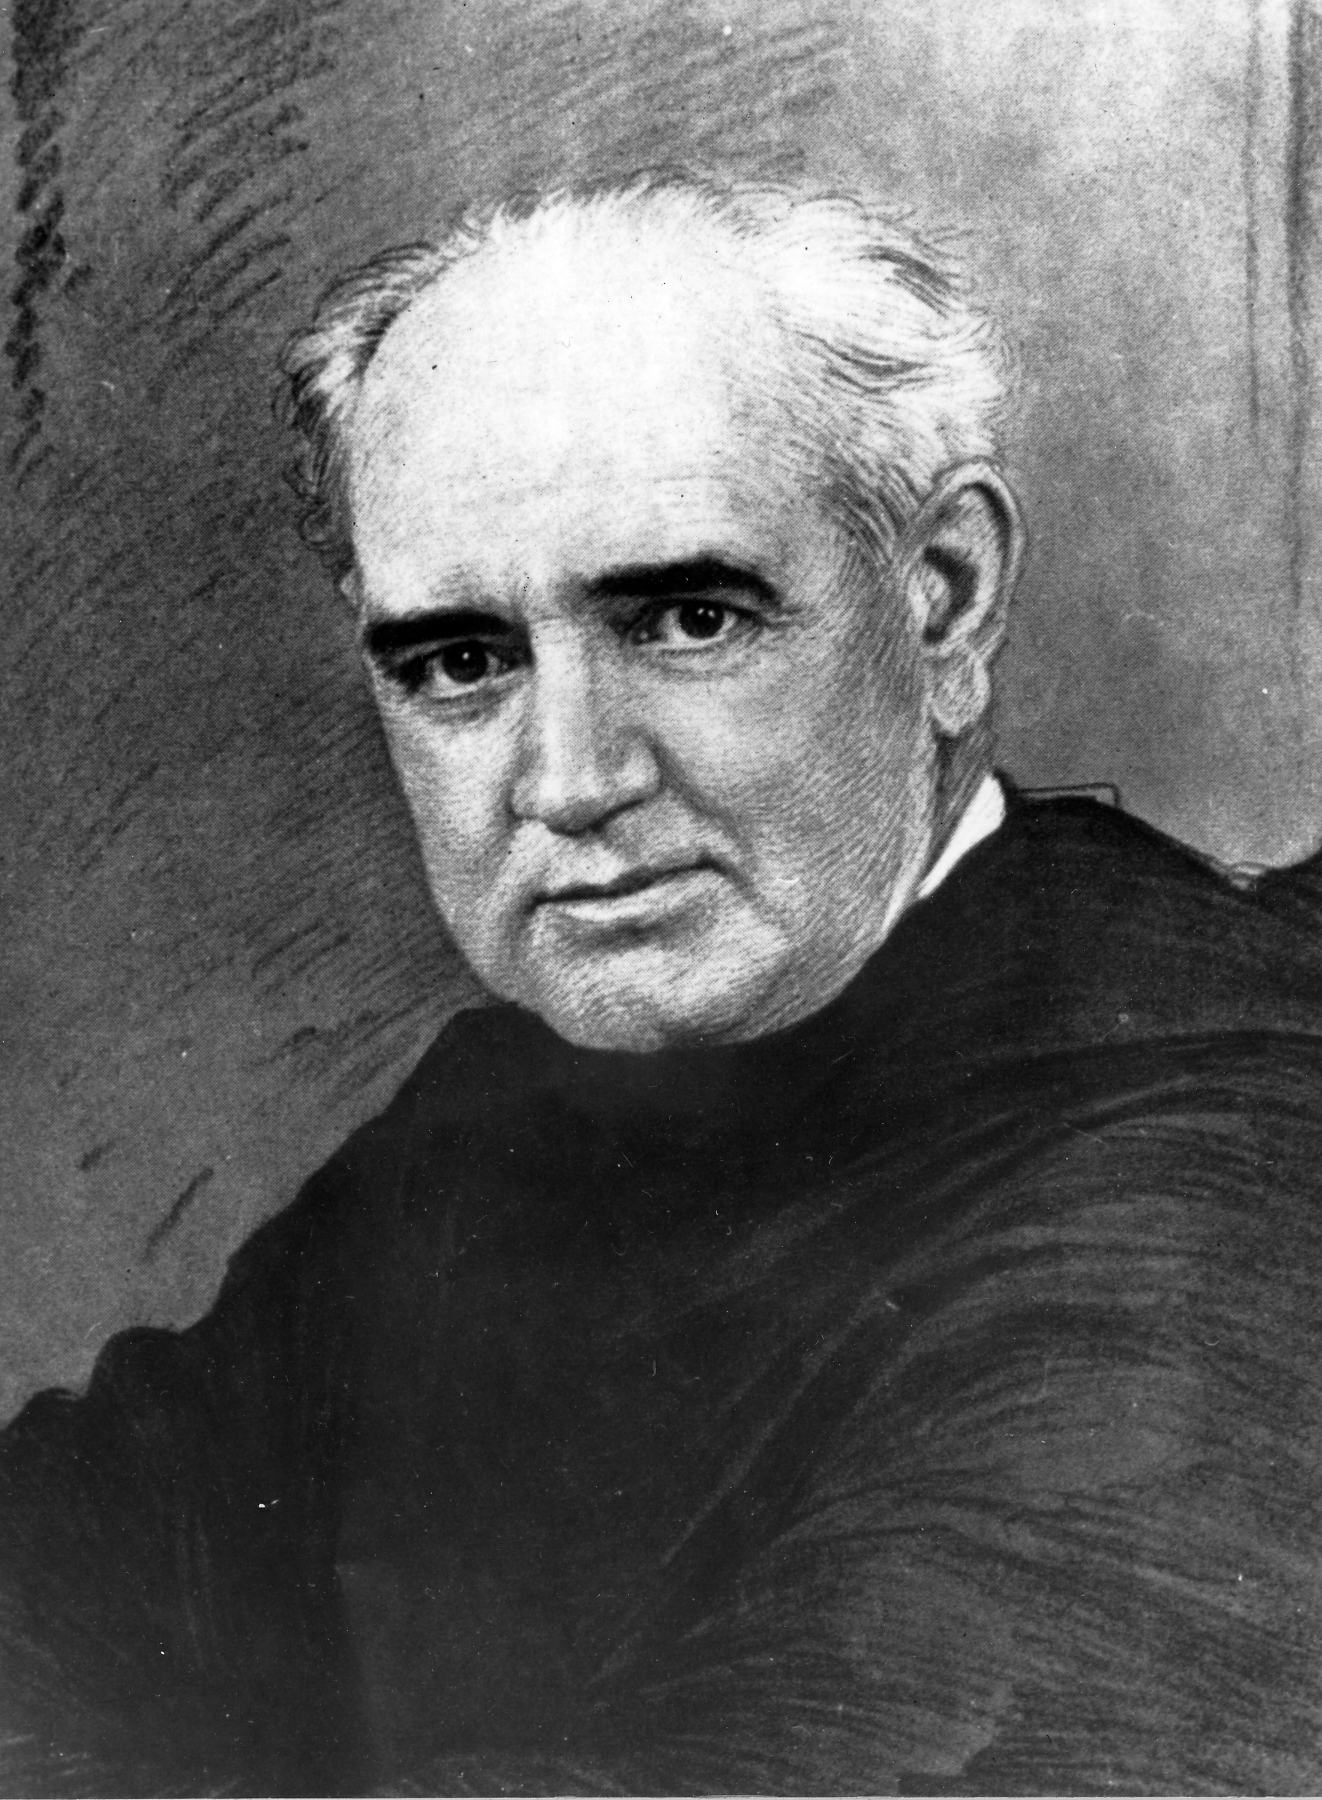 Reverend Francis A. Driscoll, O.S.A., A.M.